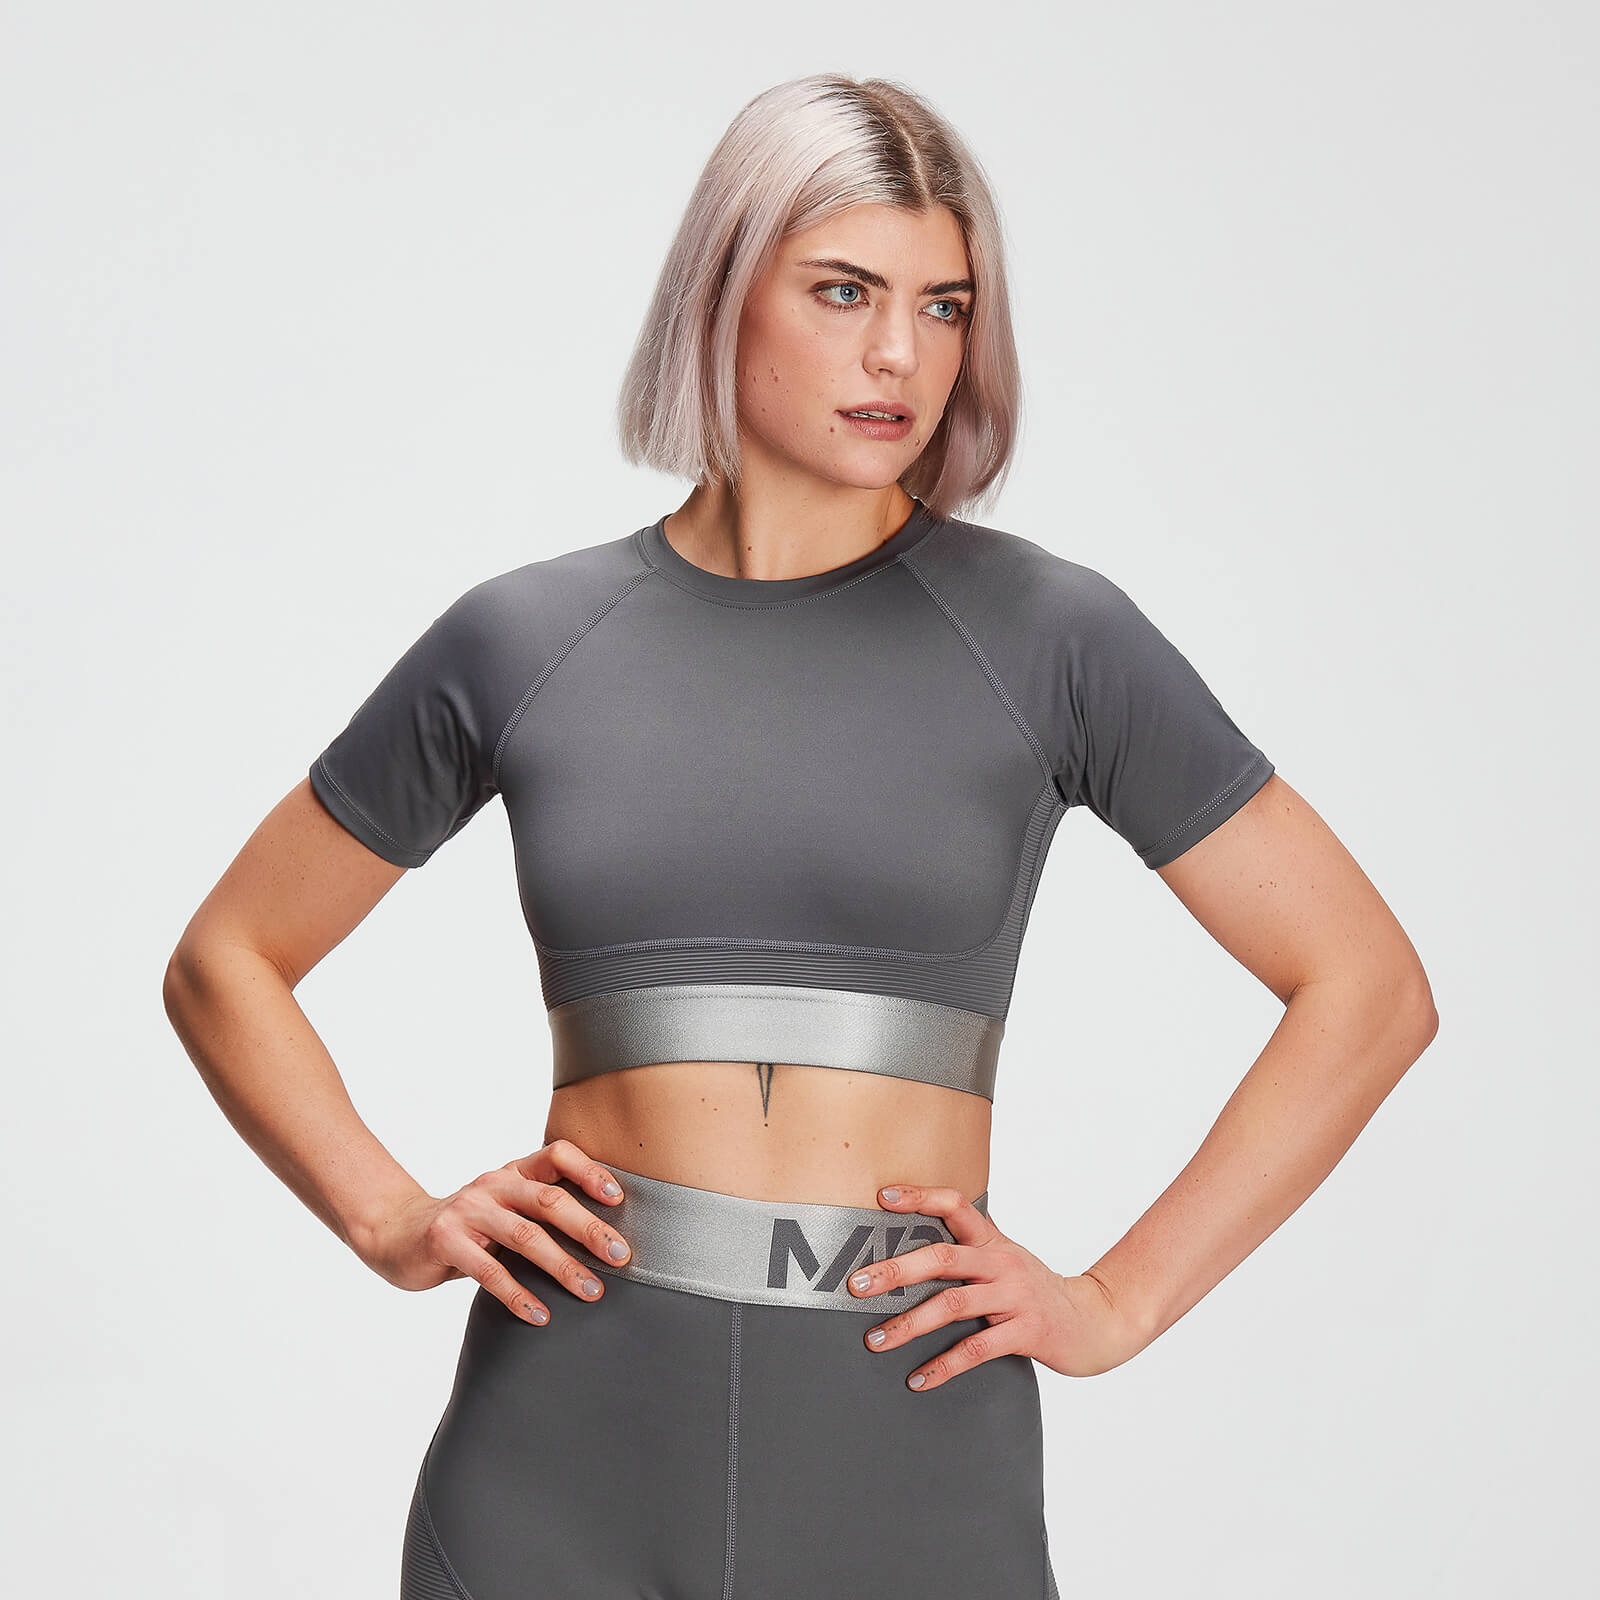 Crop top texturé MP Adapt pour femmes – Carbone - XS